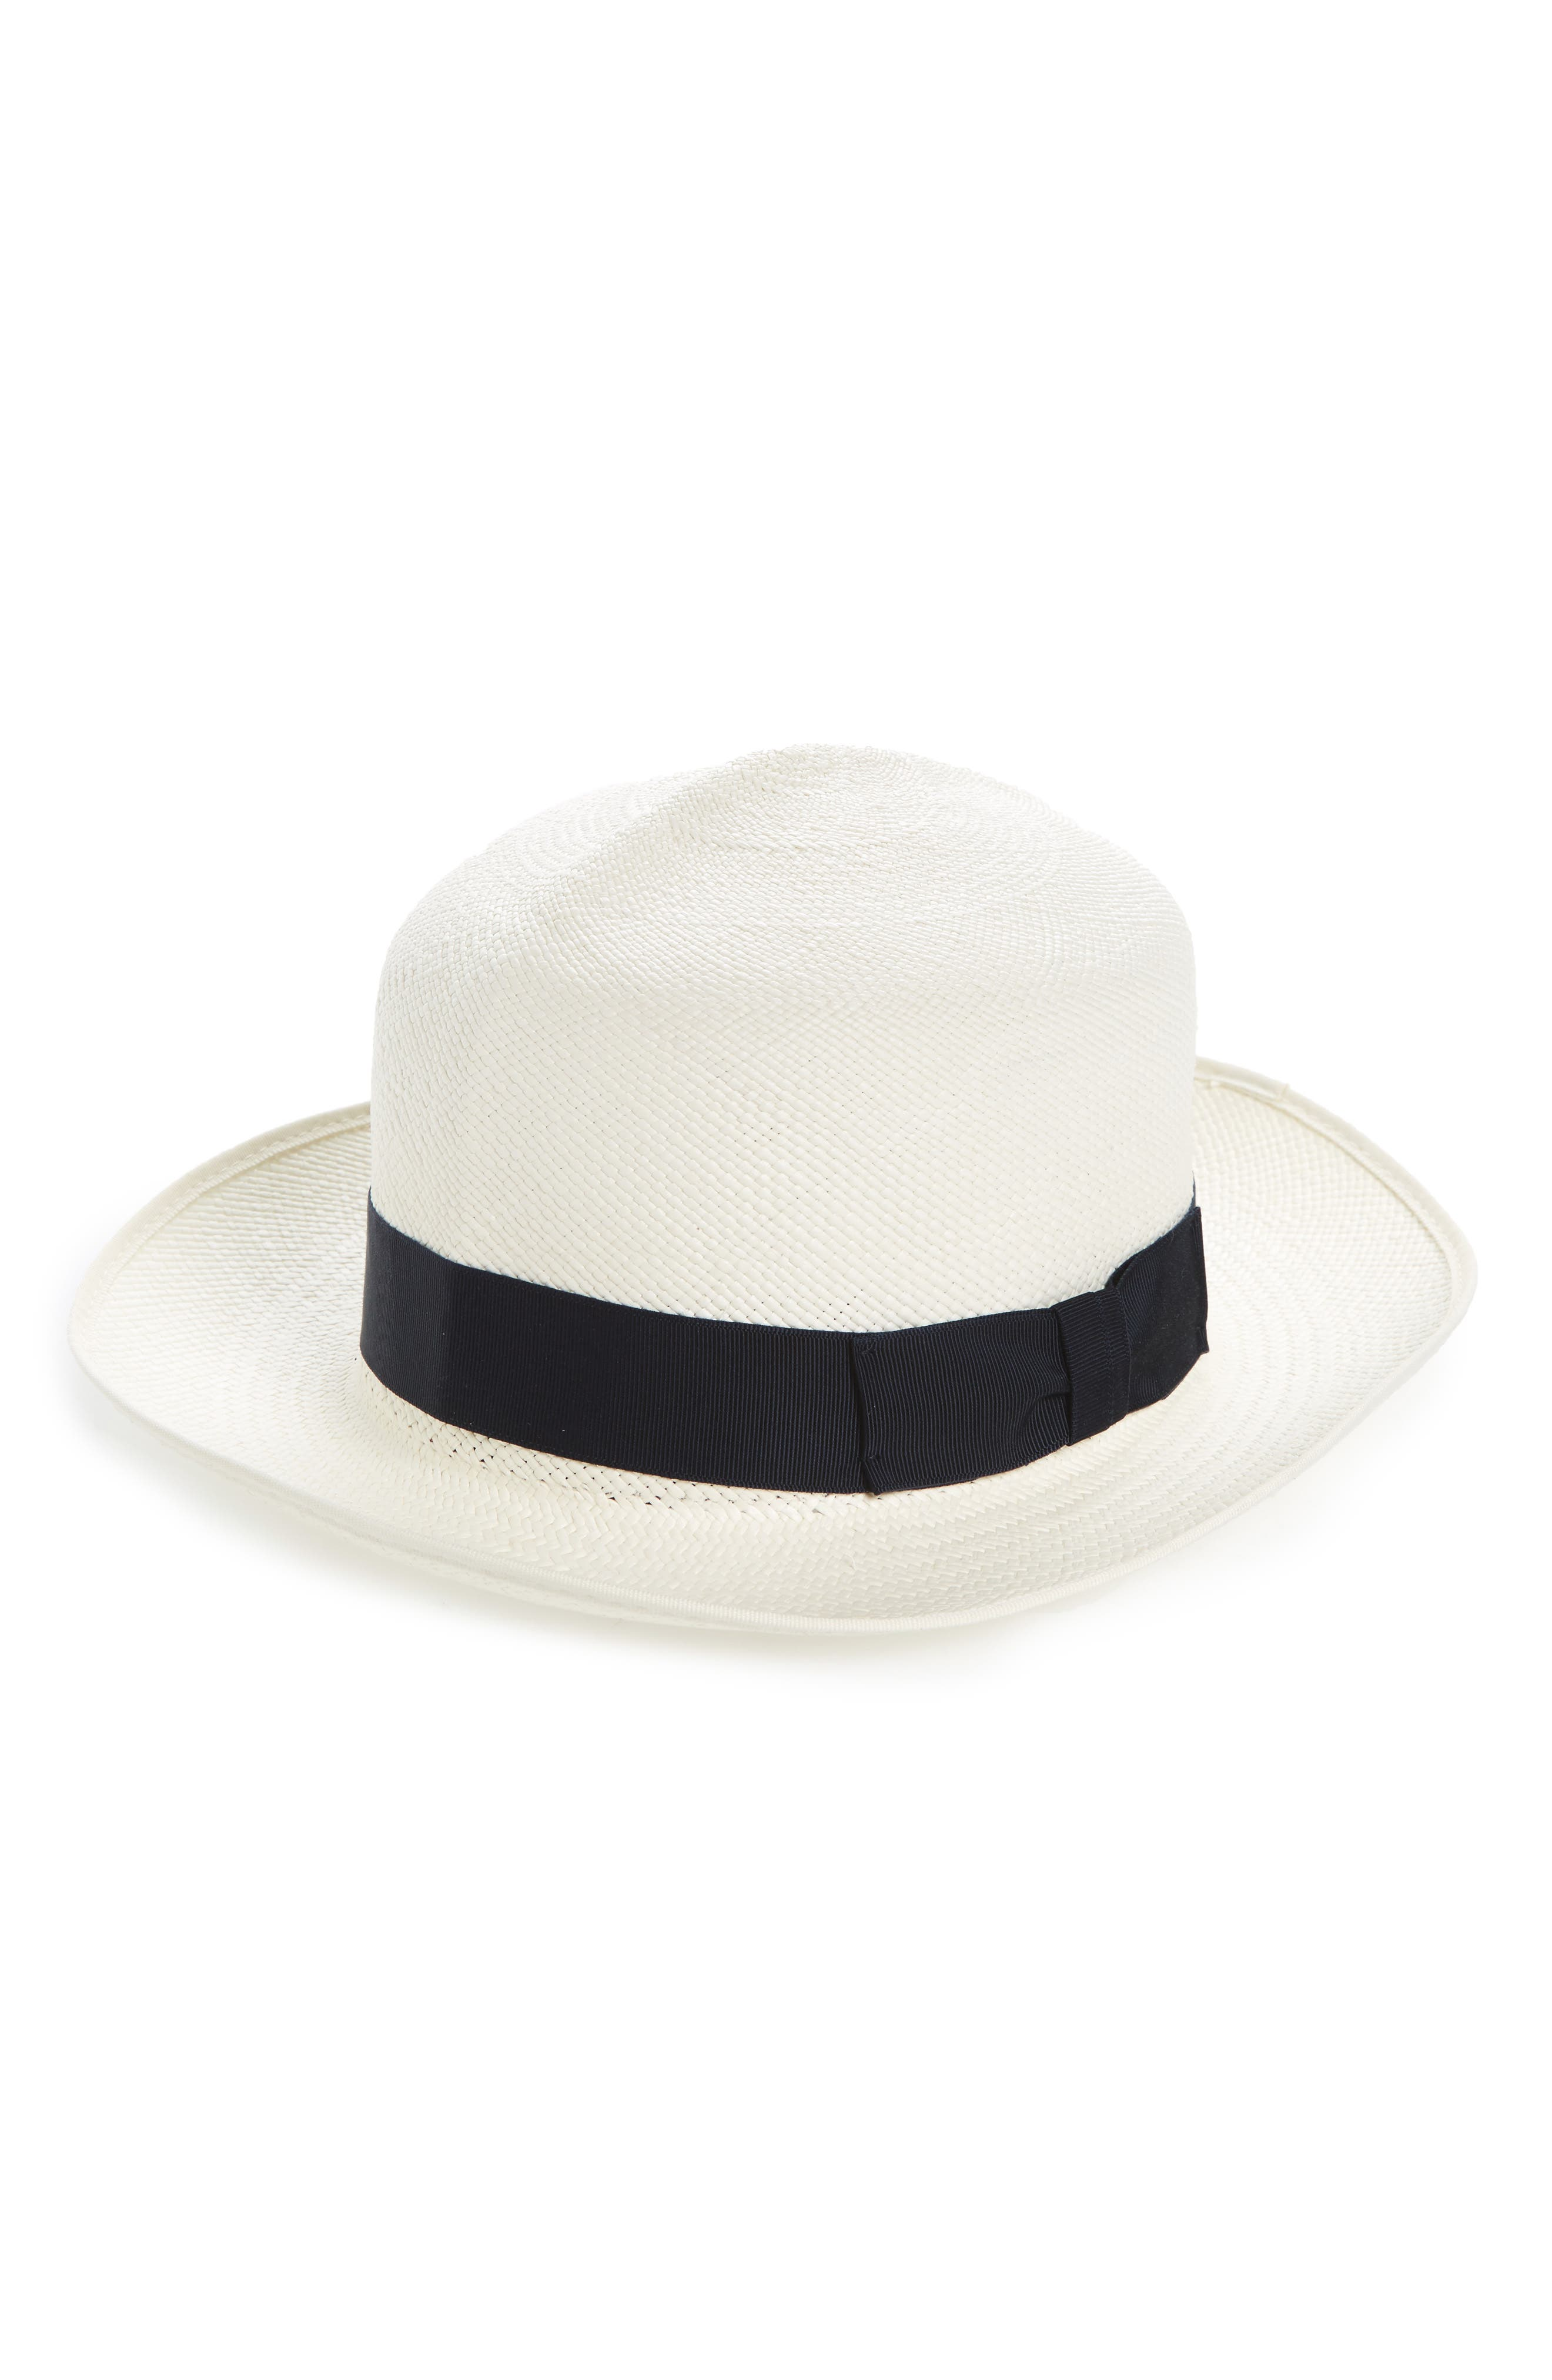 Christy's Hats Folder Straw Panama Hat,                         Main,                         color, Bleached Navy W/ Cream Band